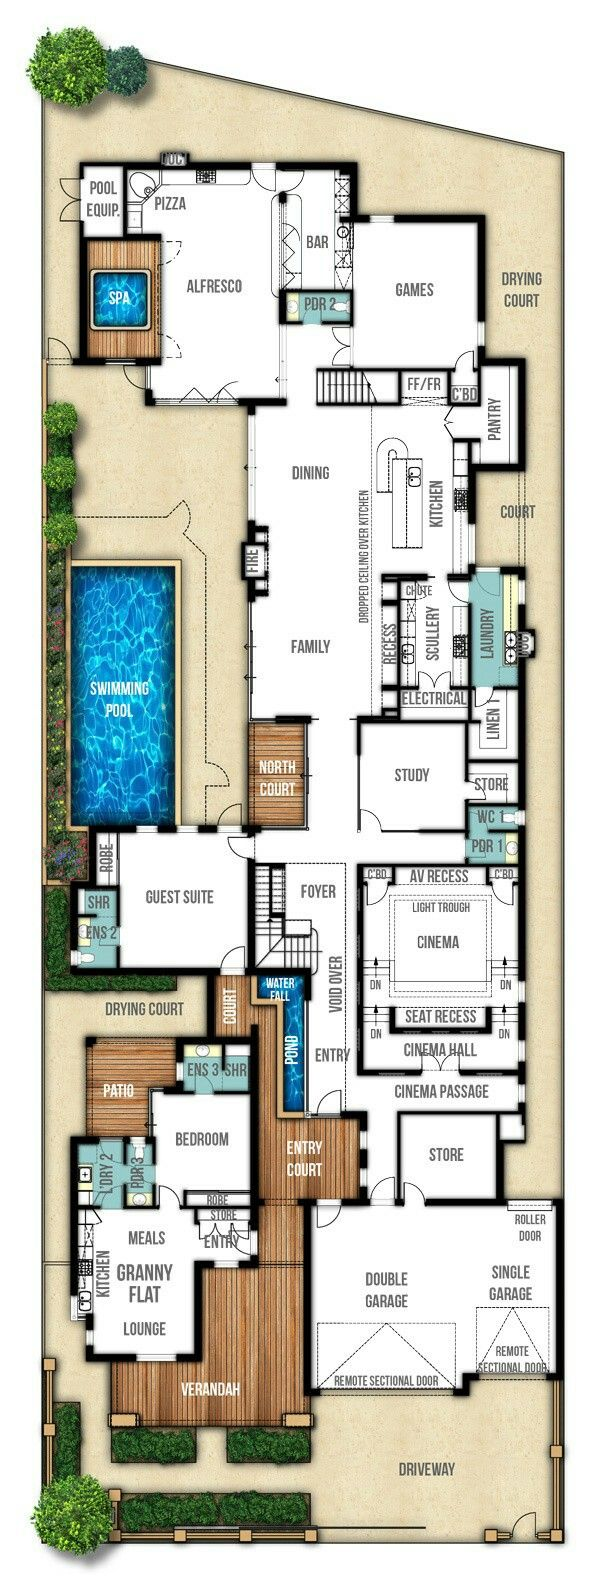 Awesome 1st Floor With A Few Modifications Floor Plans Storey Homes How To Plan